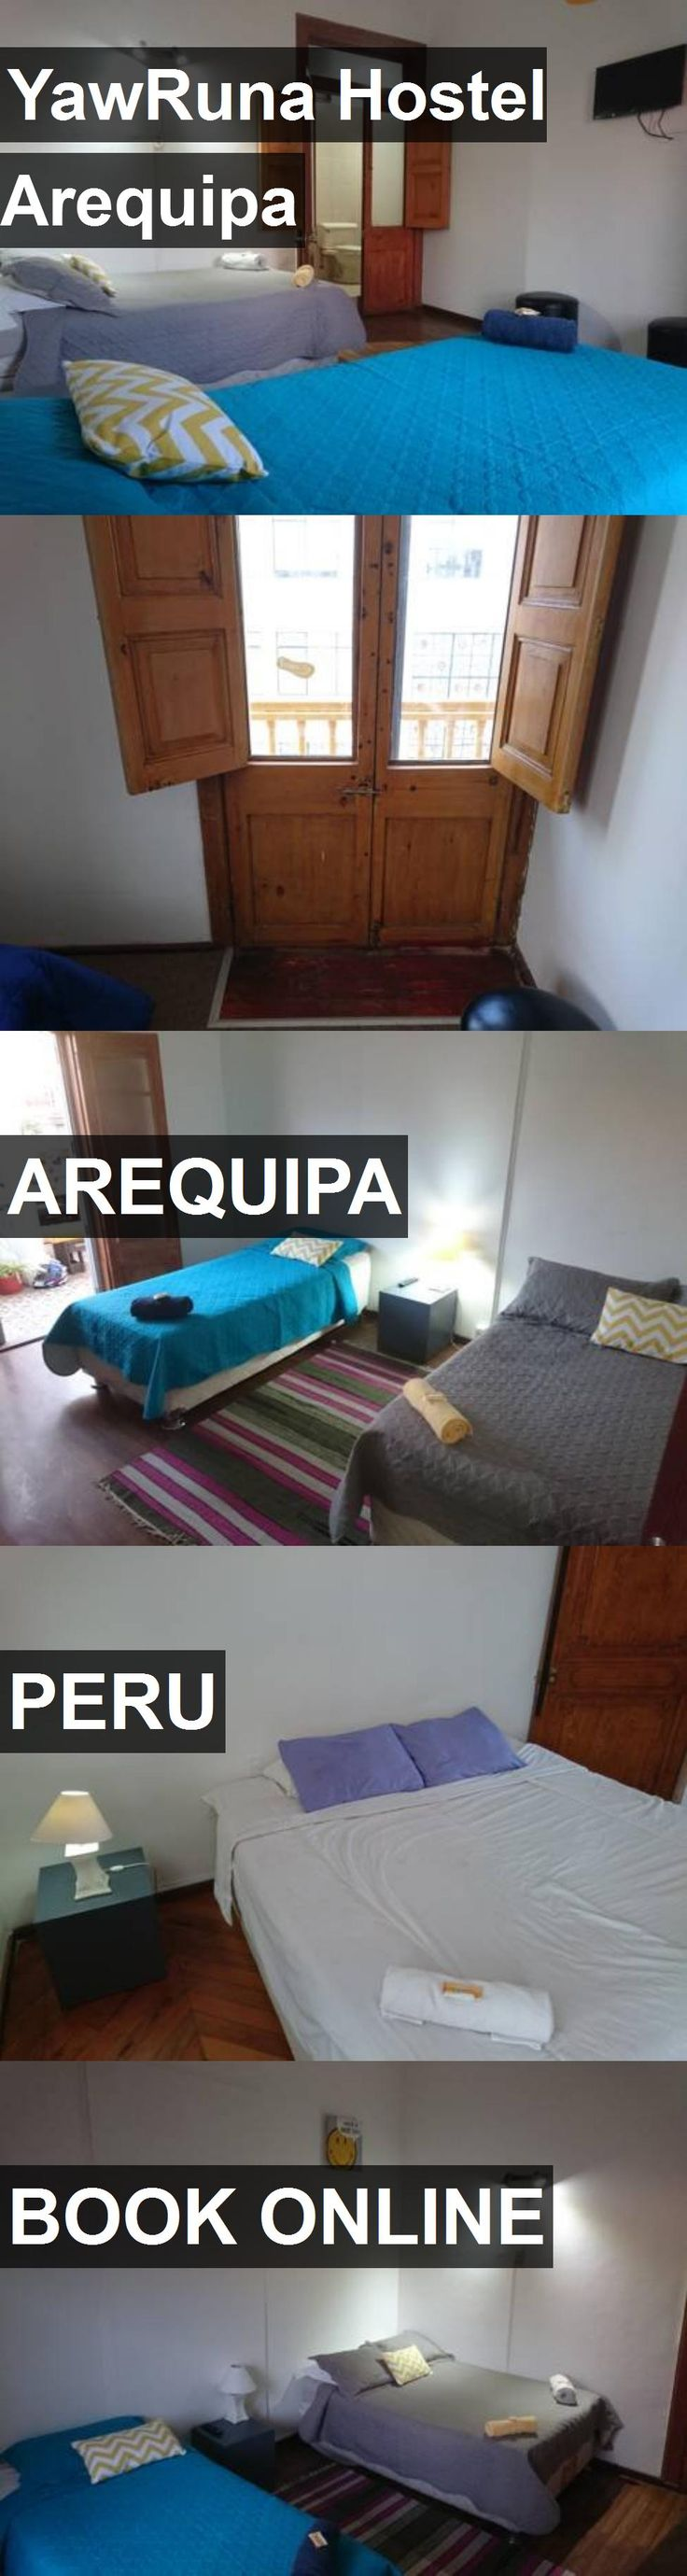 YawRuna Hostel Arequipa in Arequipa, Peru. For more information, photos, reviews and best prices please follow the link. #Peru #Arequipa #travel #vacation #hostel